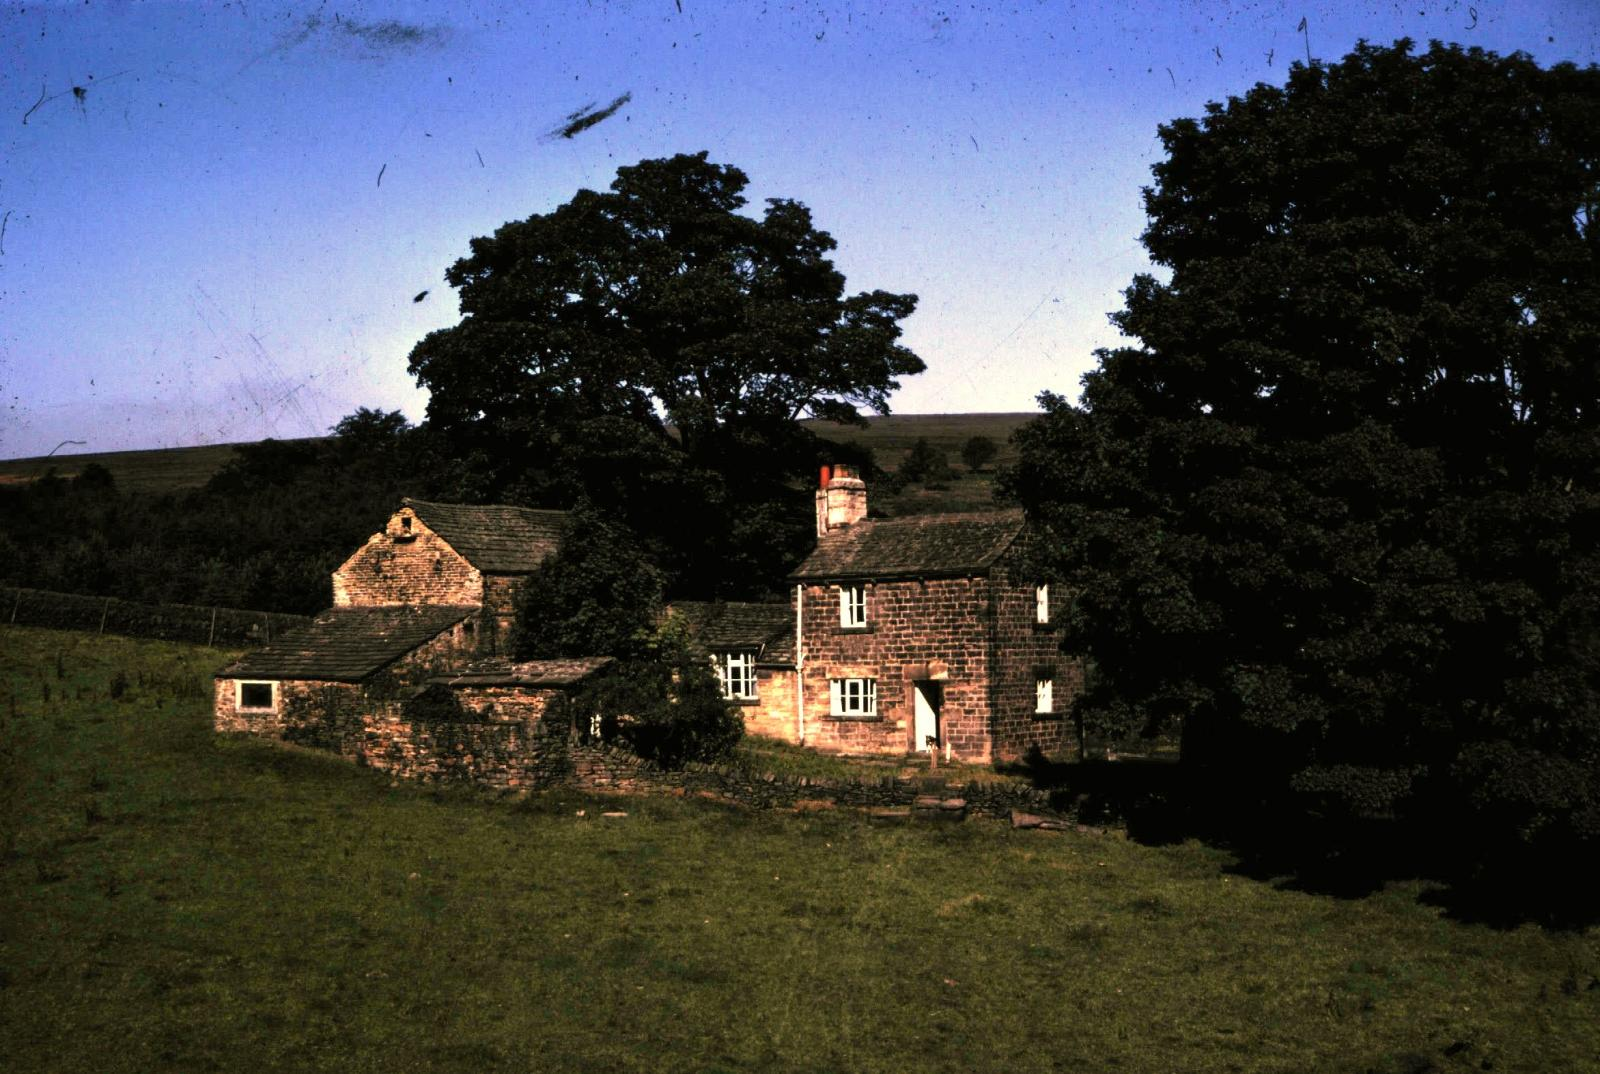 Wilkin Hill cottage, Low Bradfield